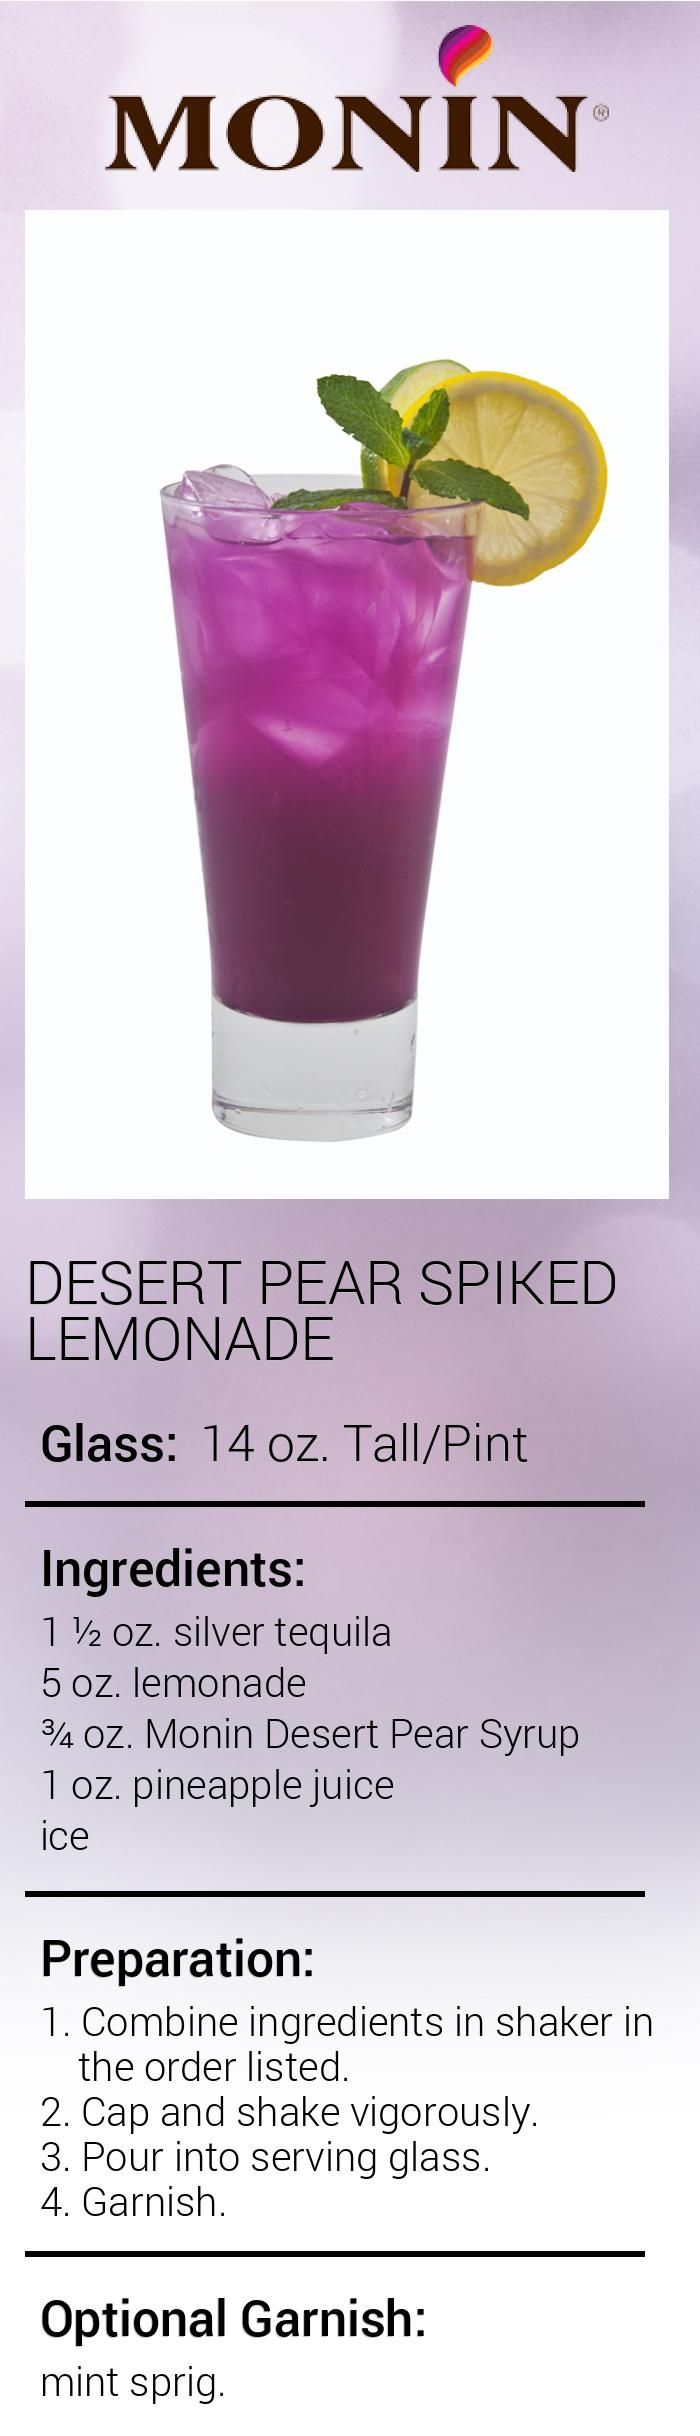 Desert Pear Spiked Lemonade